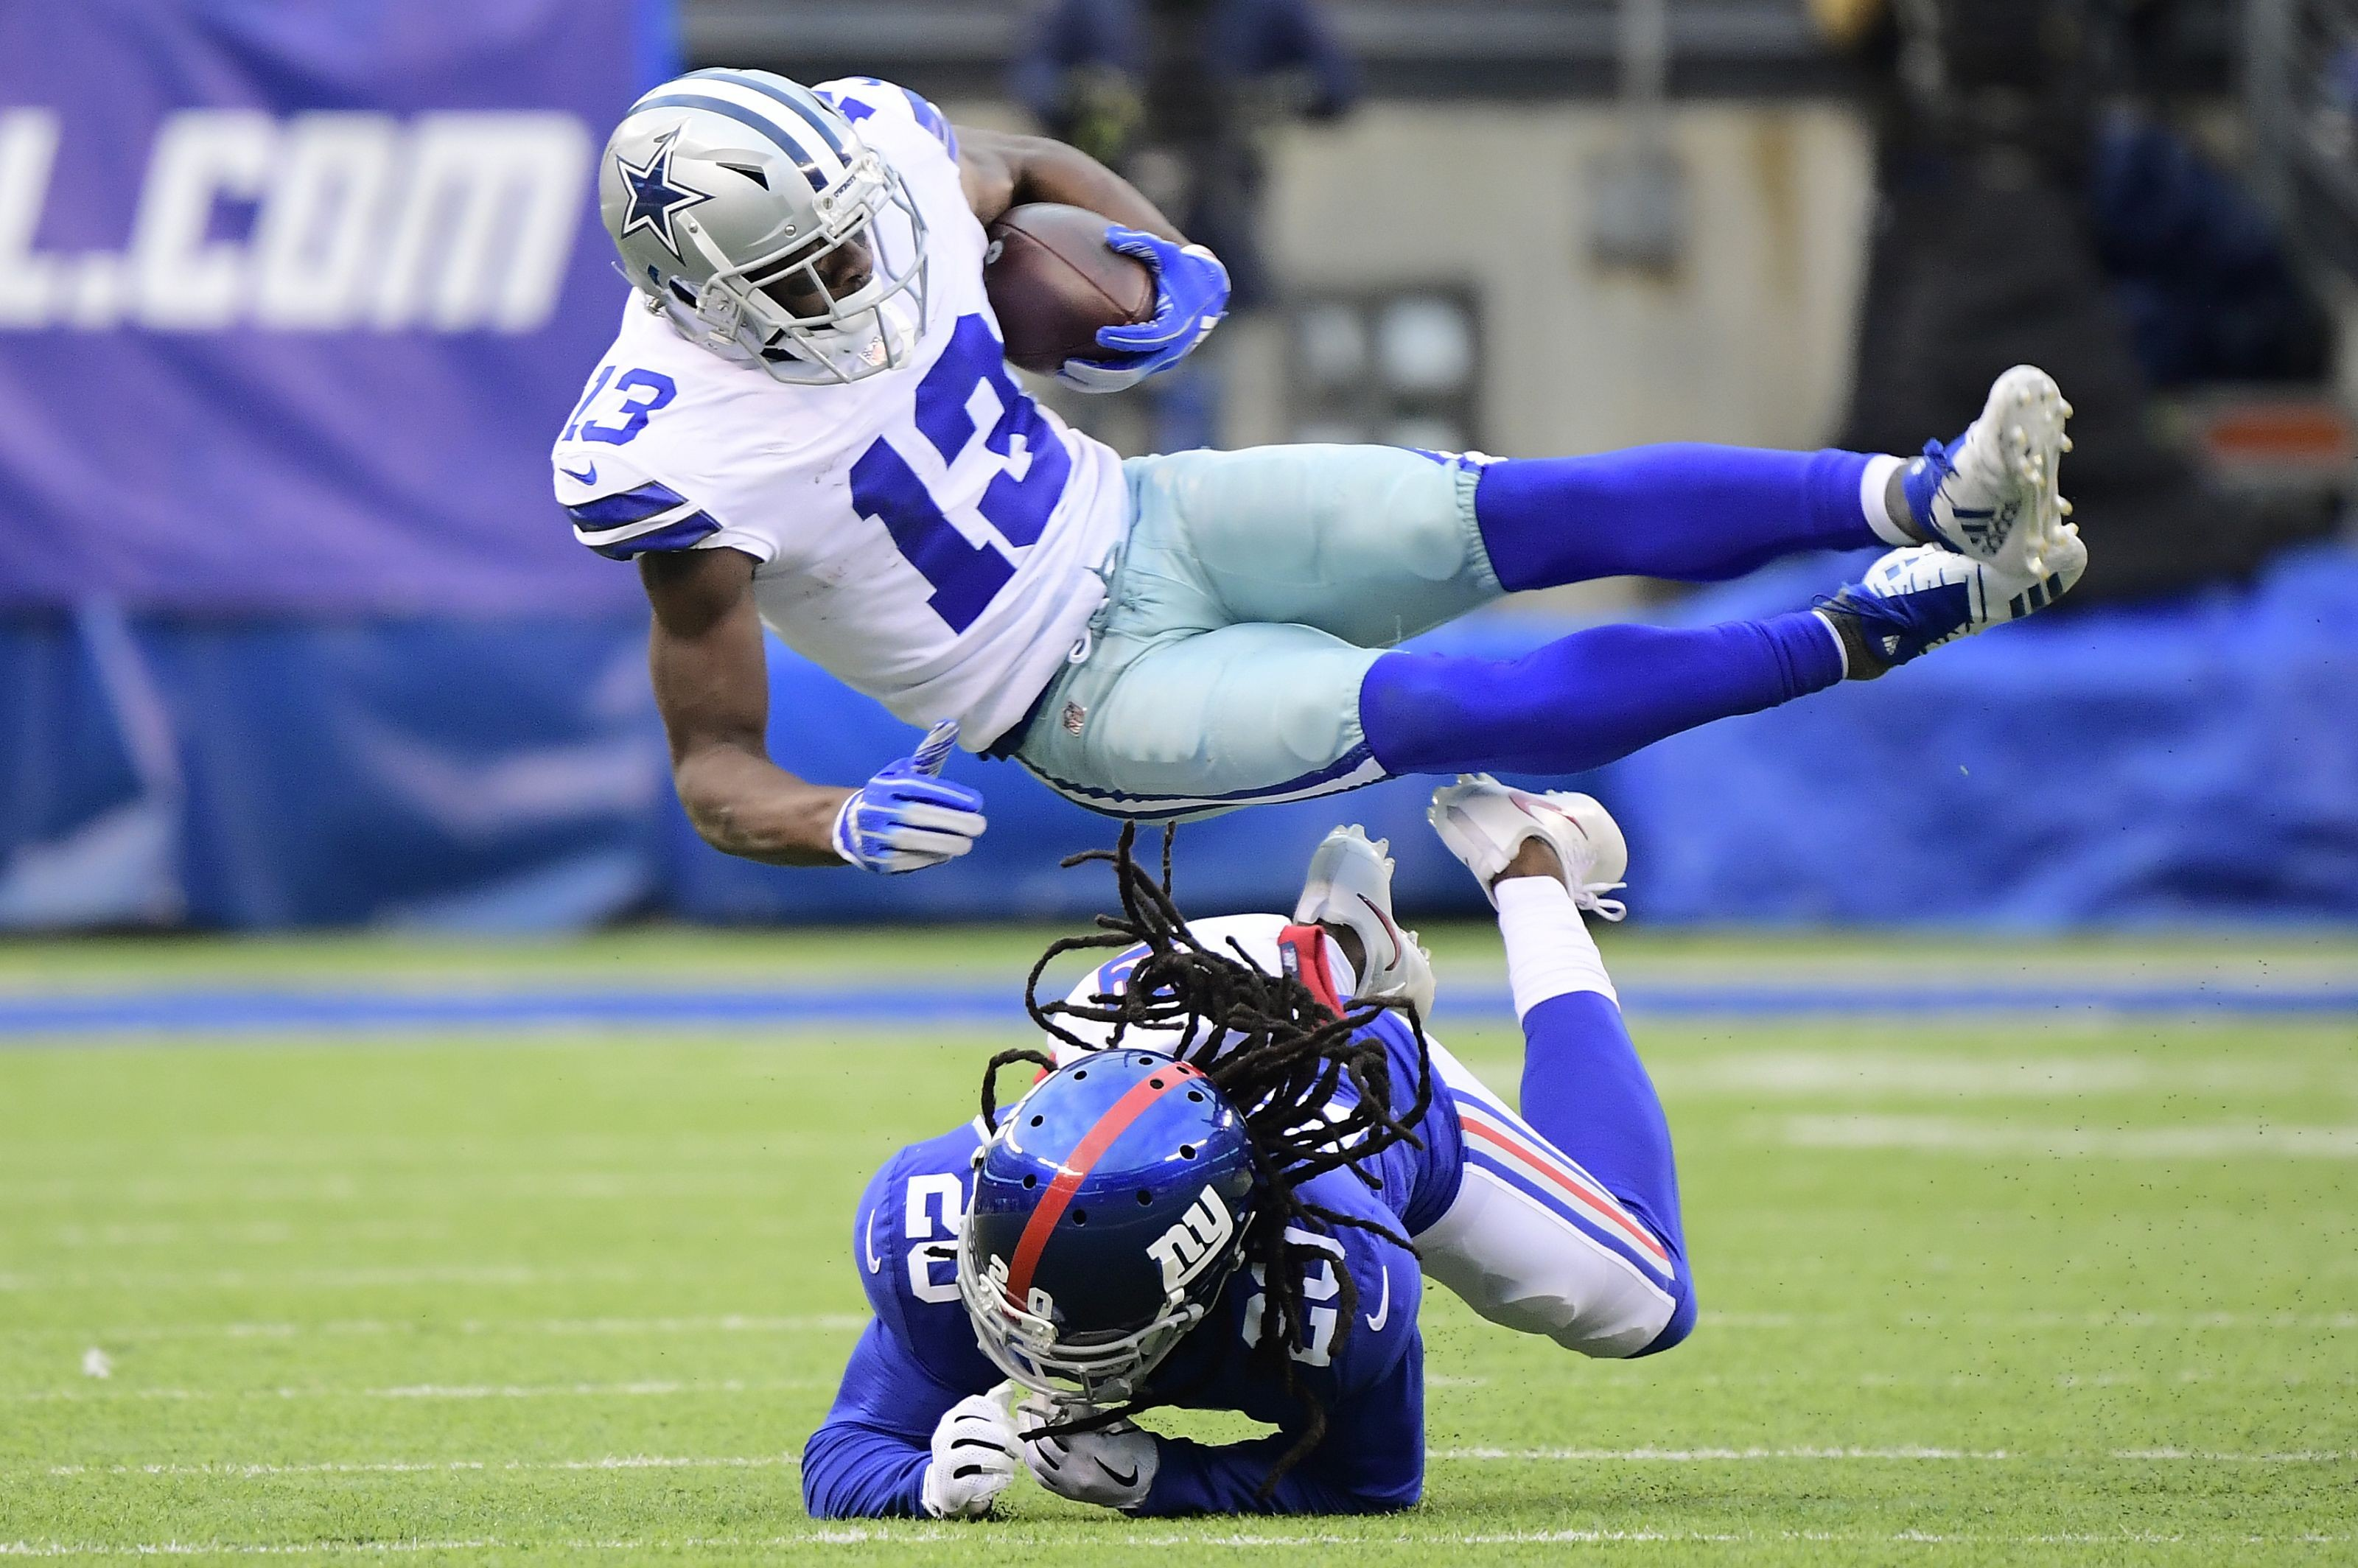 Dallas Cowboys sign a free agent defensive tackle with upside